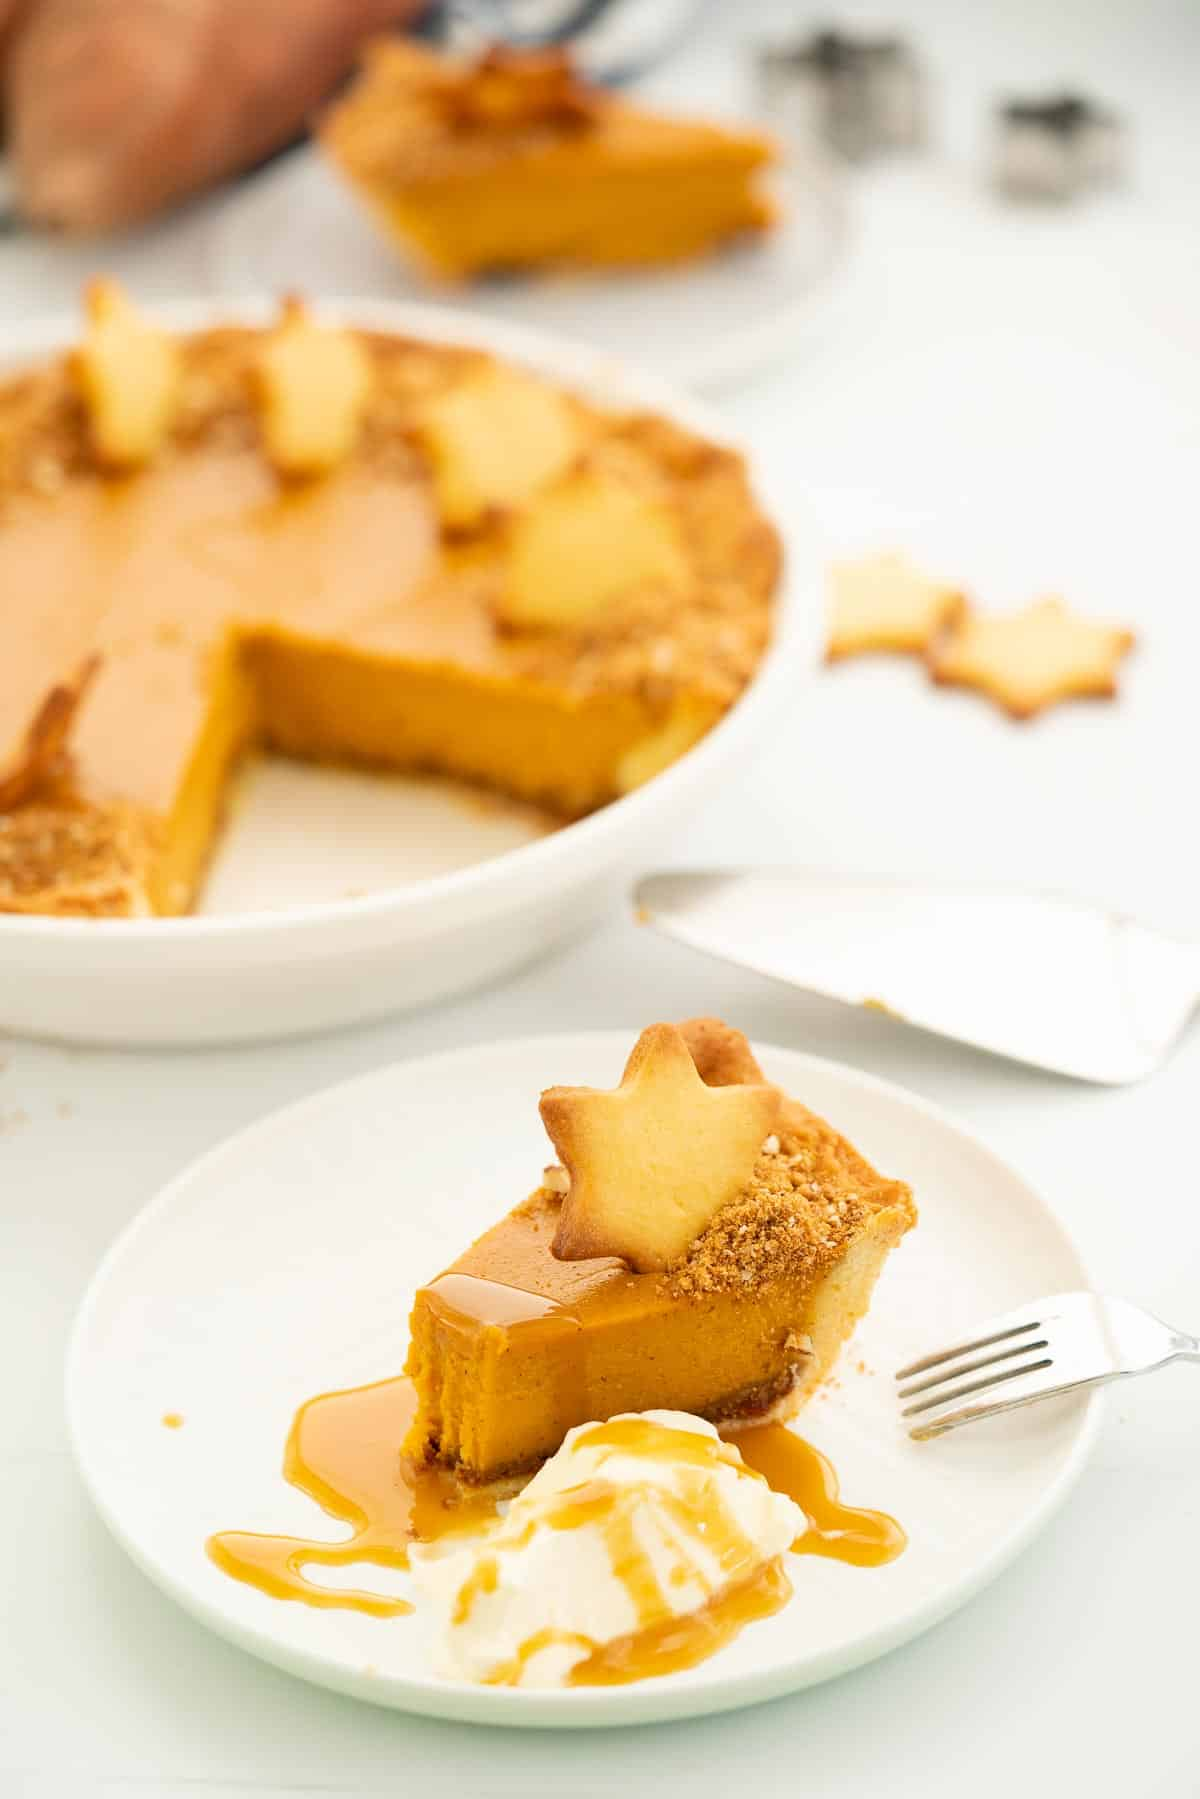 A slice of sweet potato pie decorated with a pastry star, whipped cream and caramel sauce.